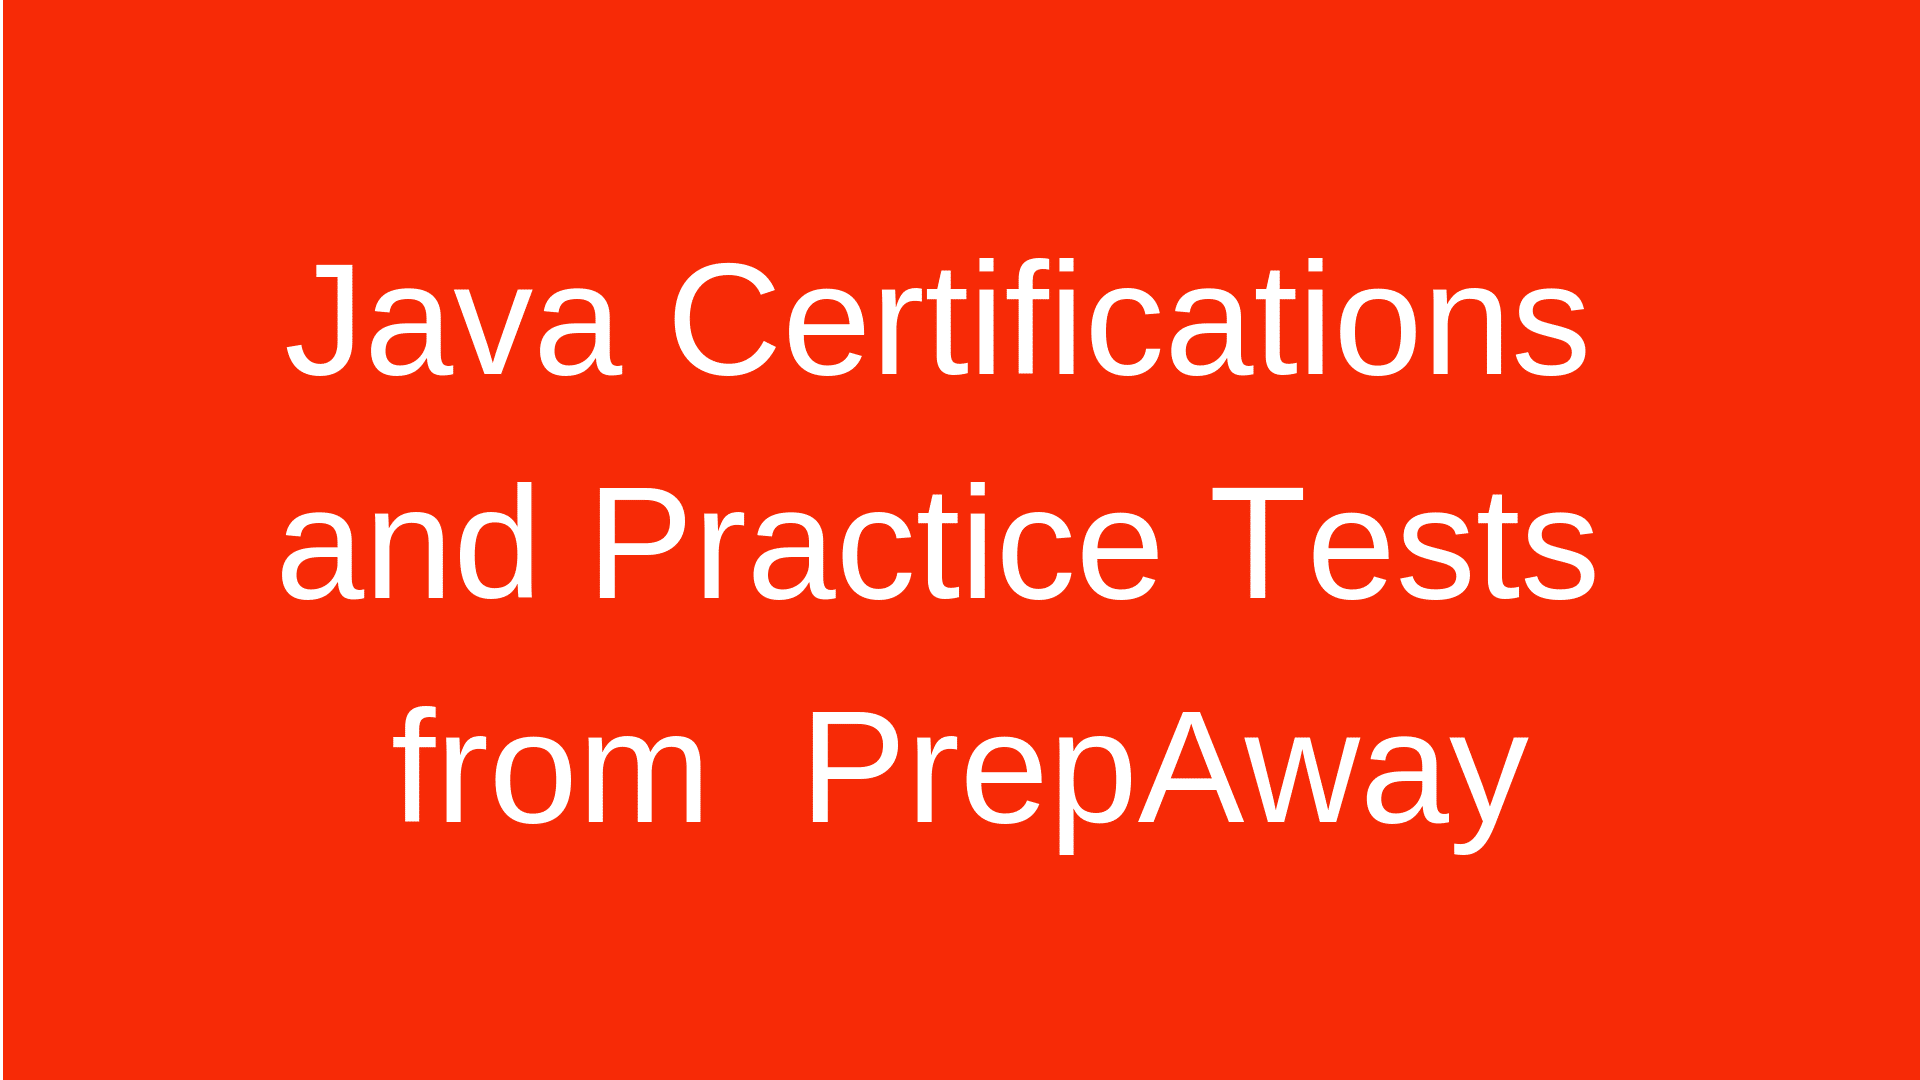 Brief Summary of Oracle Java Certifications and Practice Tests from